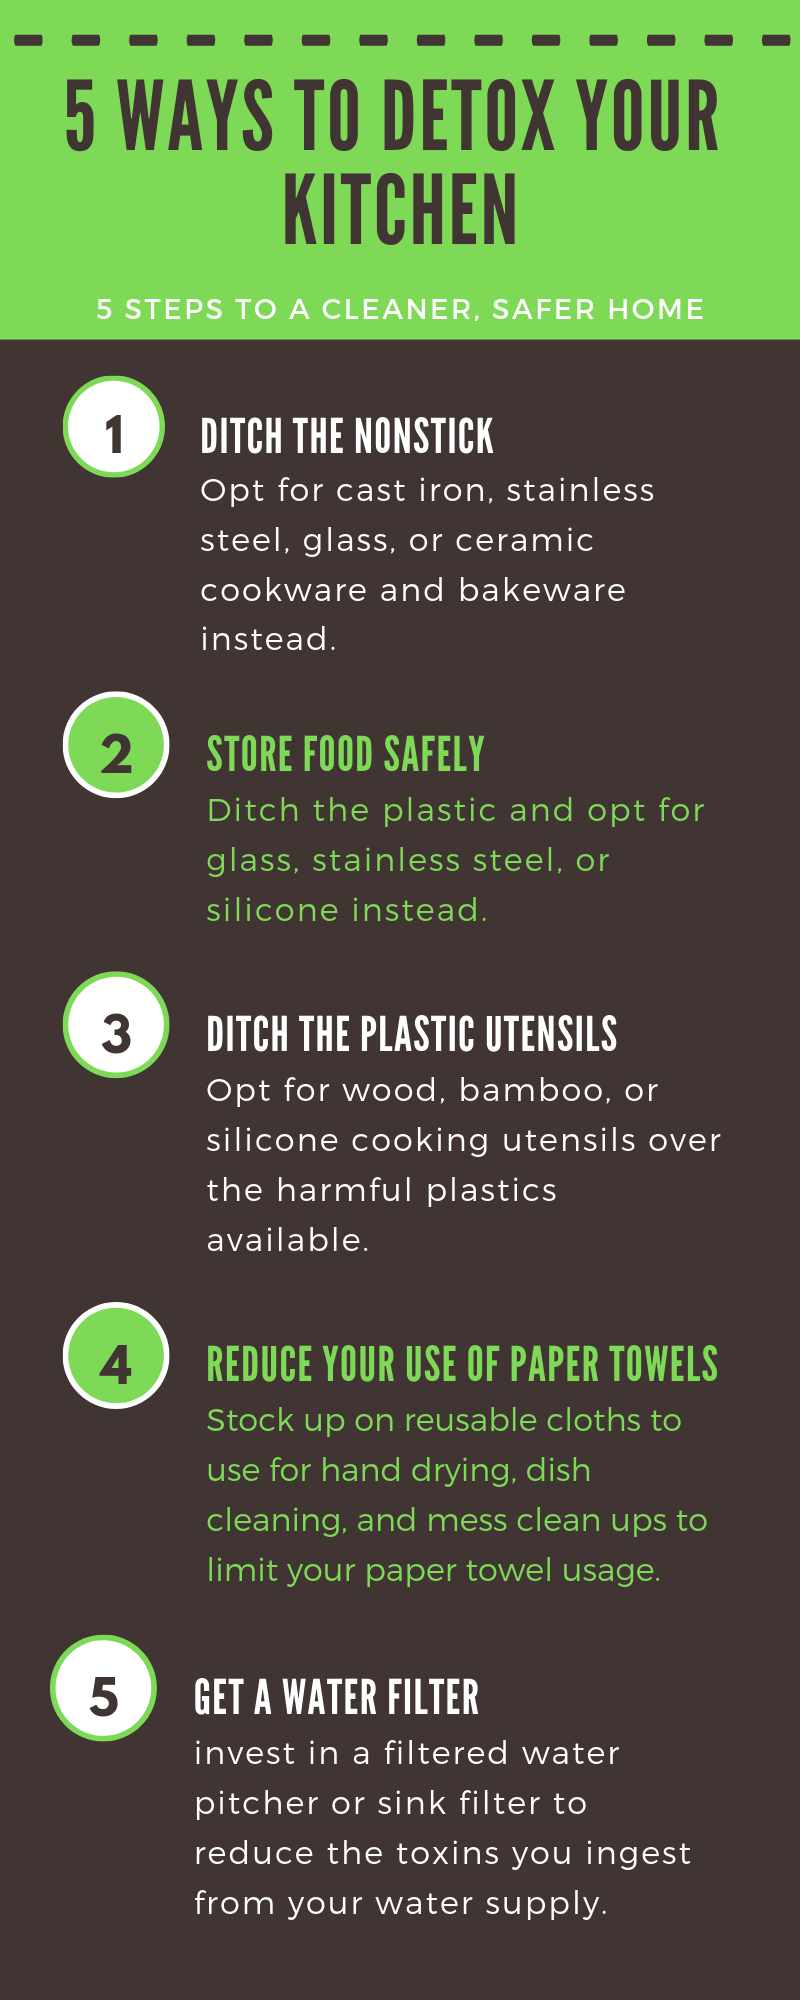 5 Ways to Detox Your Kitchen.png